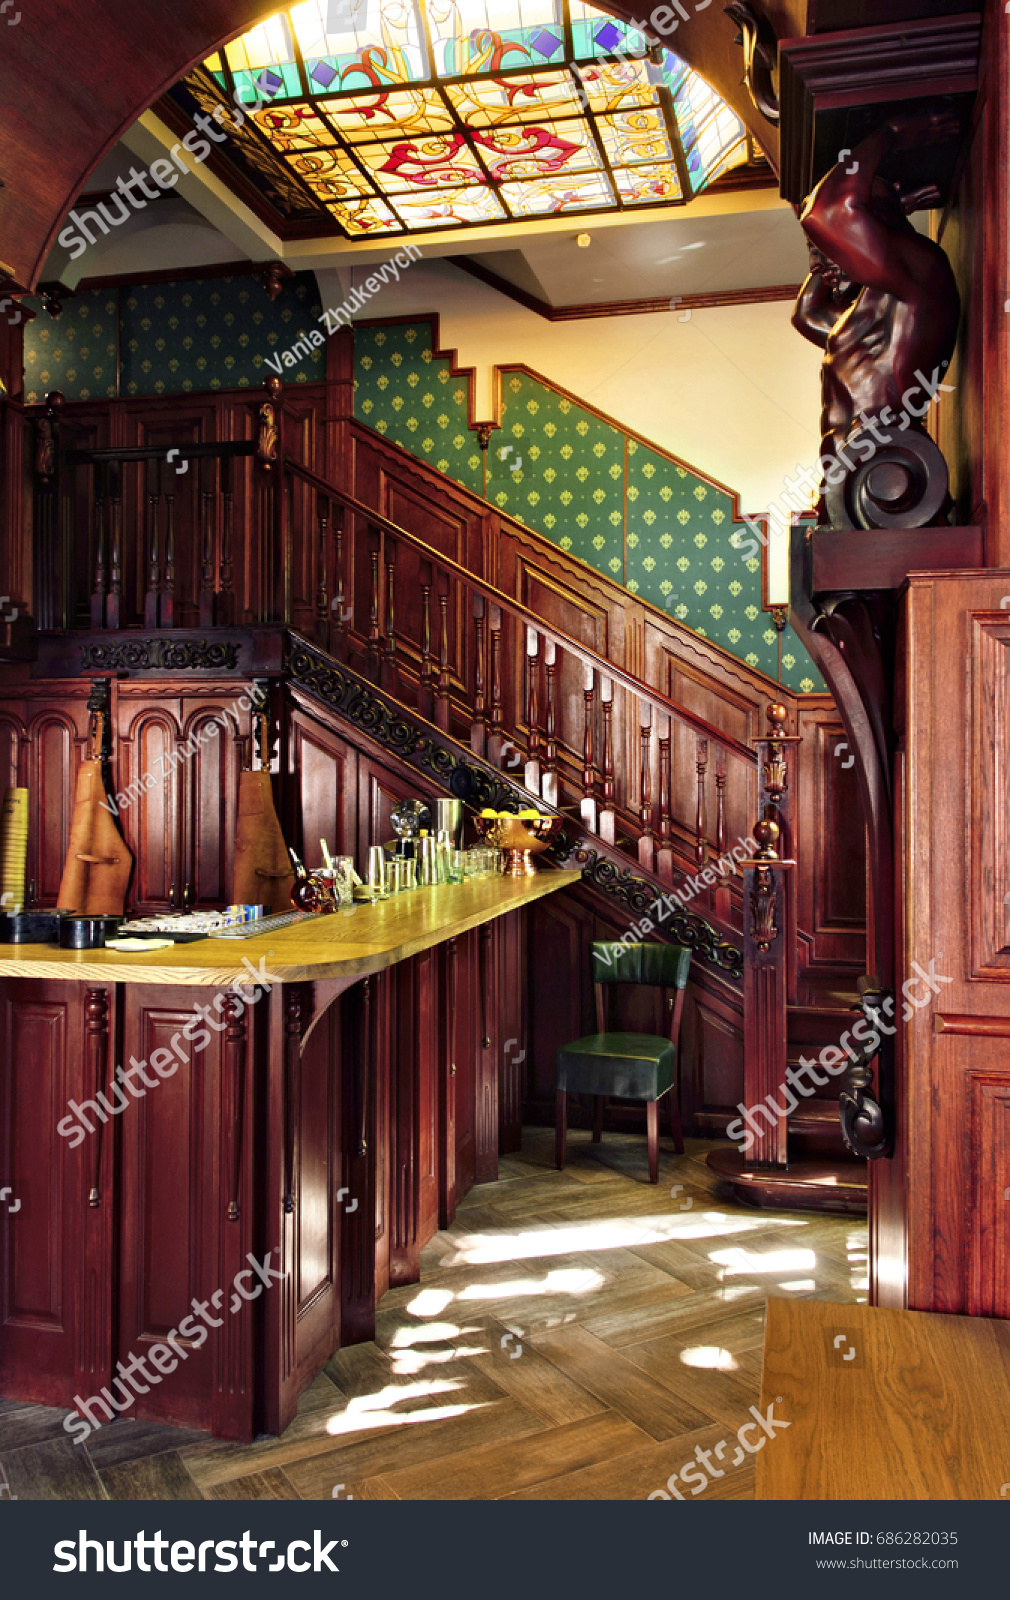 Old Classic Vintage Bar Pub Interior With Stock Photo (Royalty Free ...